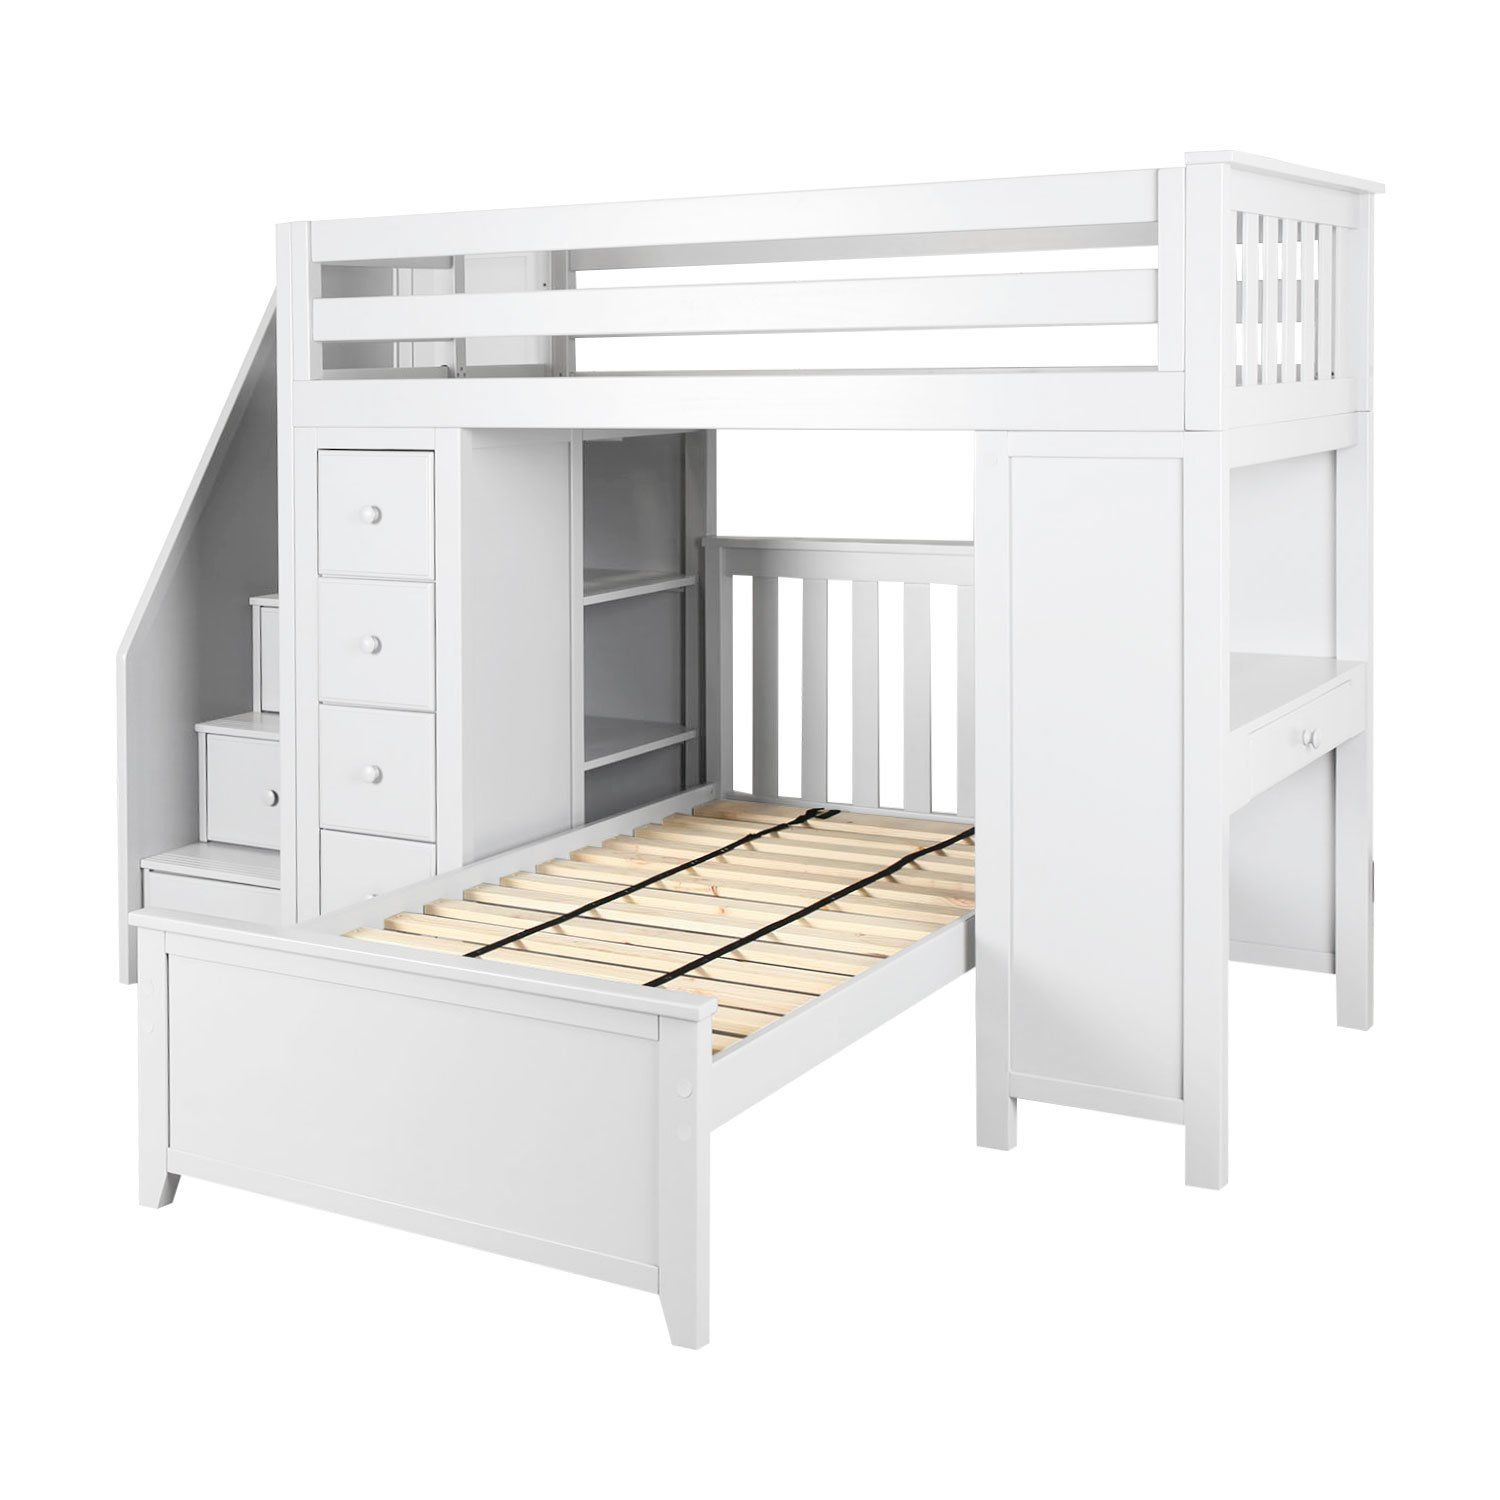 21 Top Wooden L Shaped Bunk Beds With Space Saving Features L Shaped Bunk Beds Bunk Beds With Stairs Bunk Bed Designs